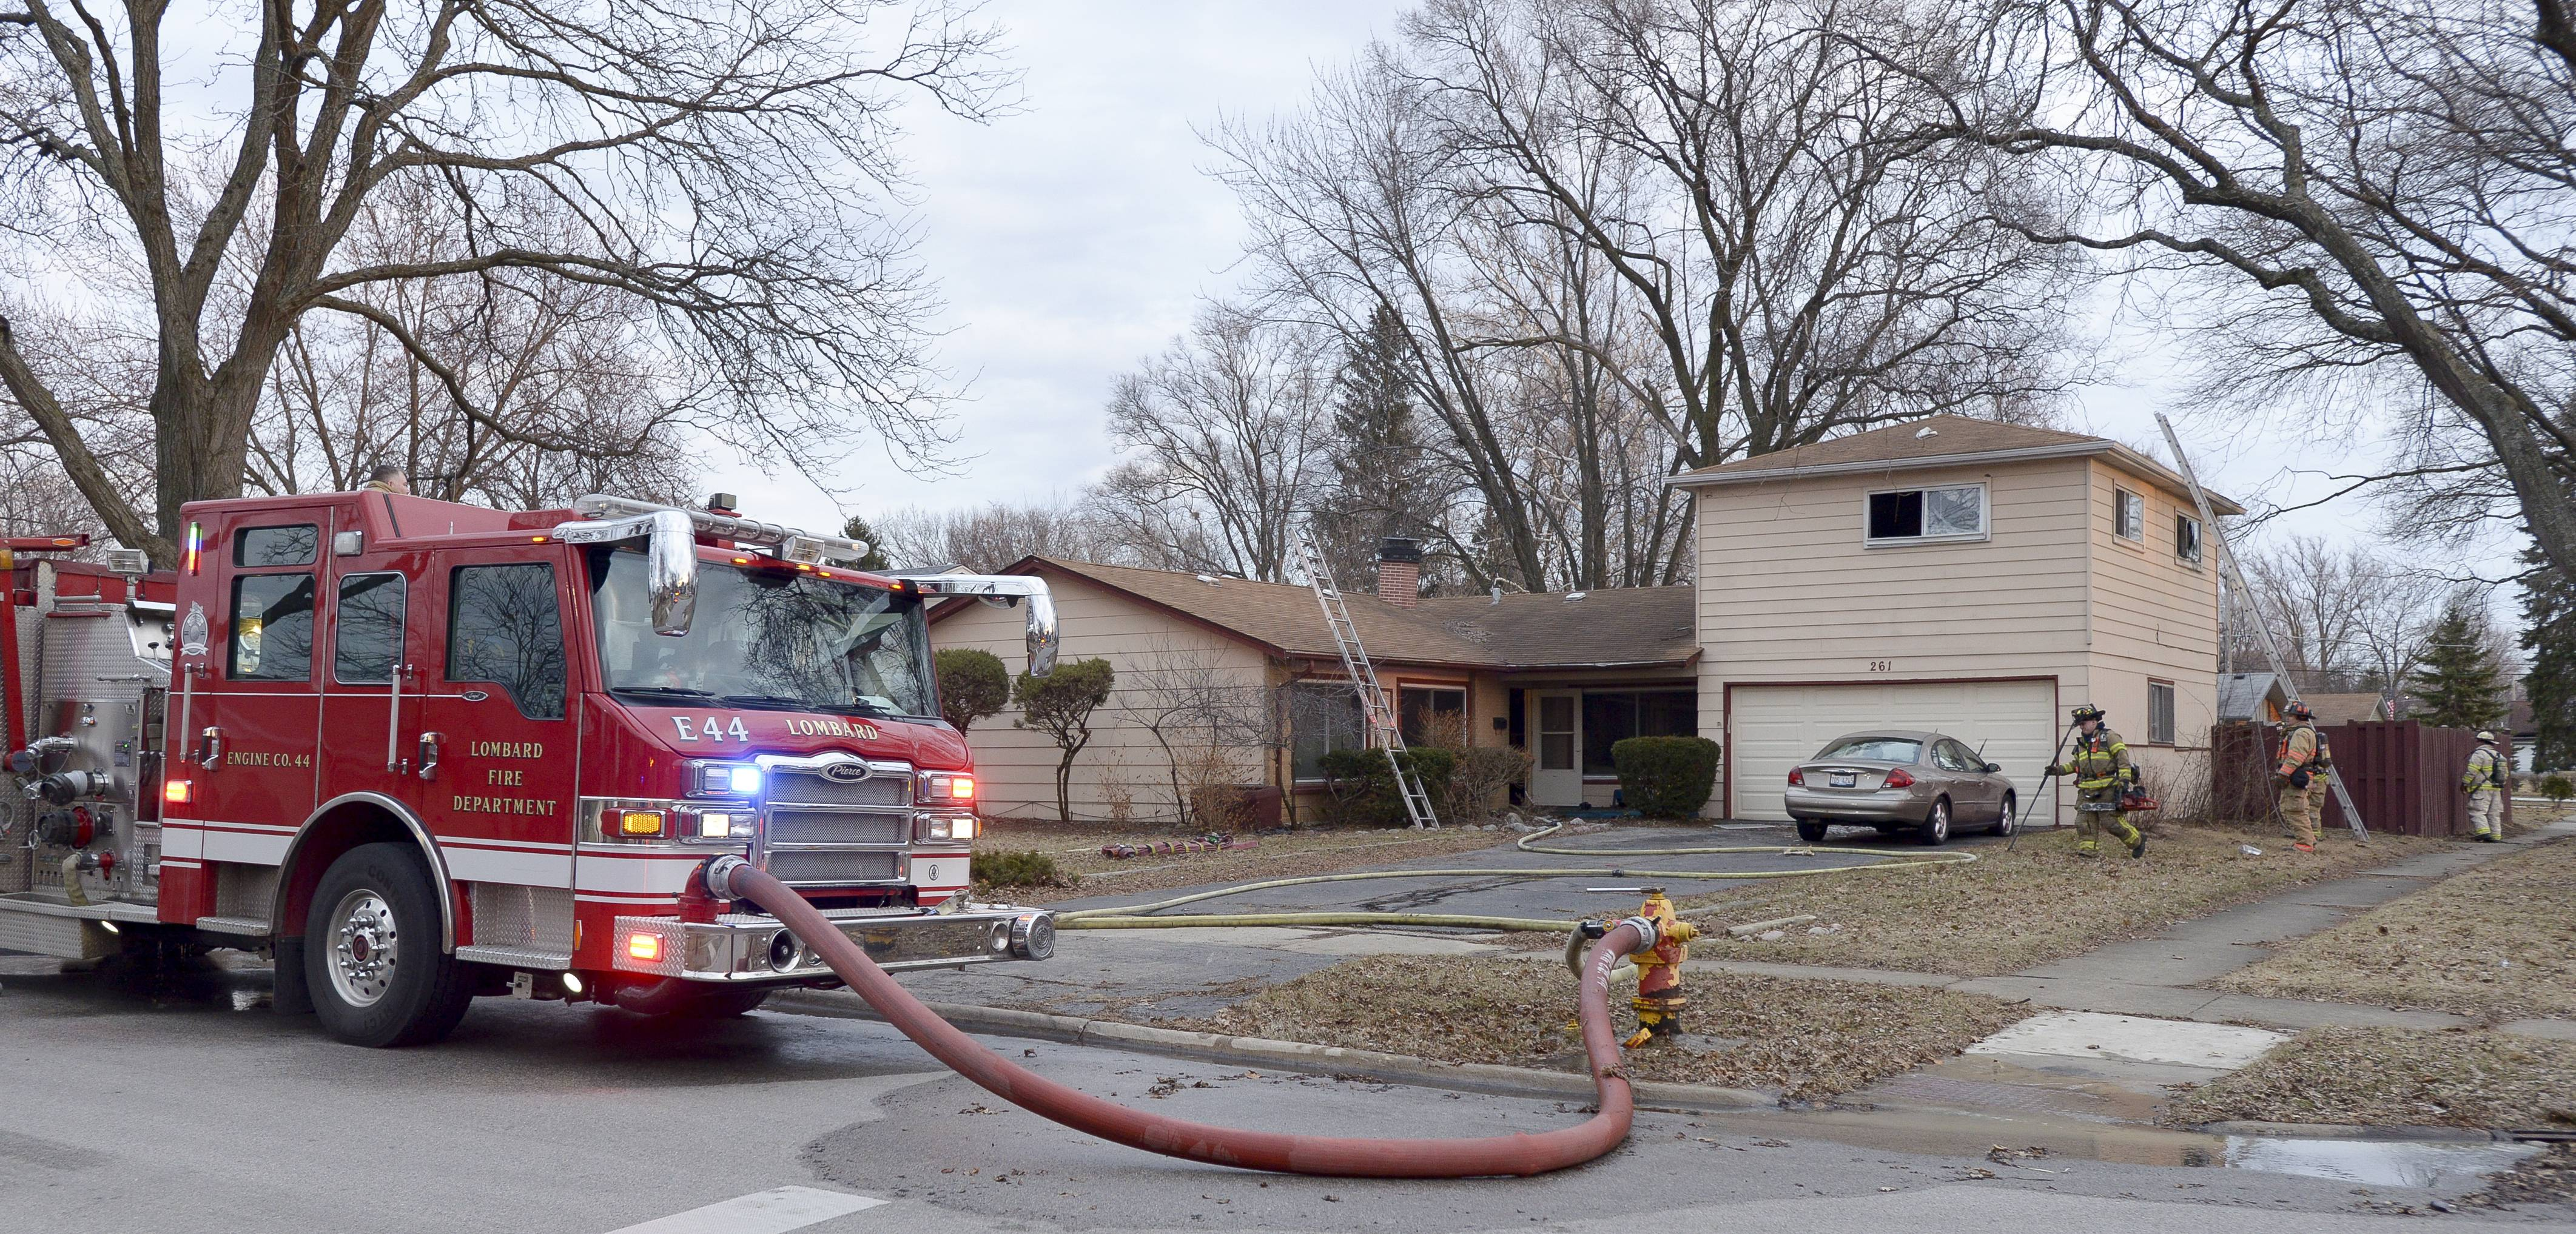 The Lombard fire department works the scene of a house fire in the 200 block of west Central Ave in Lombard.